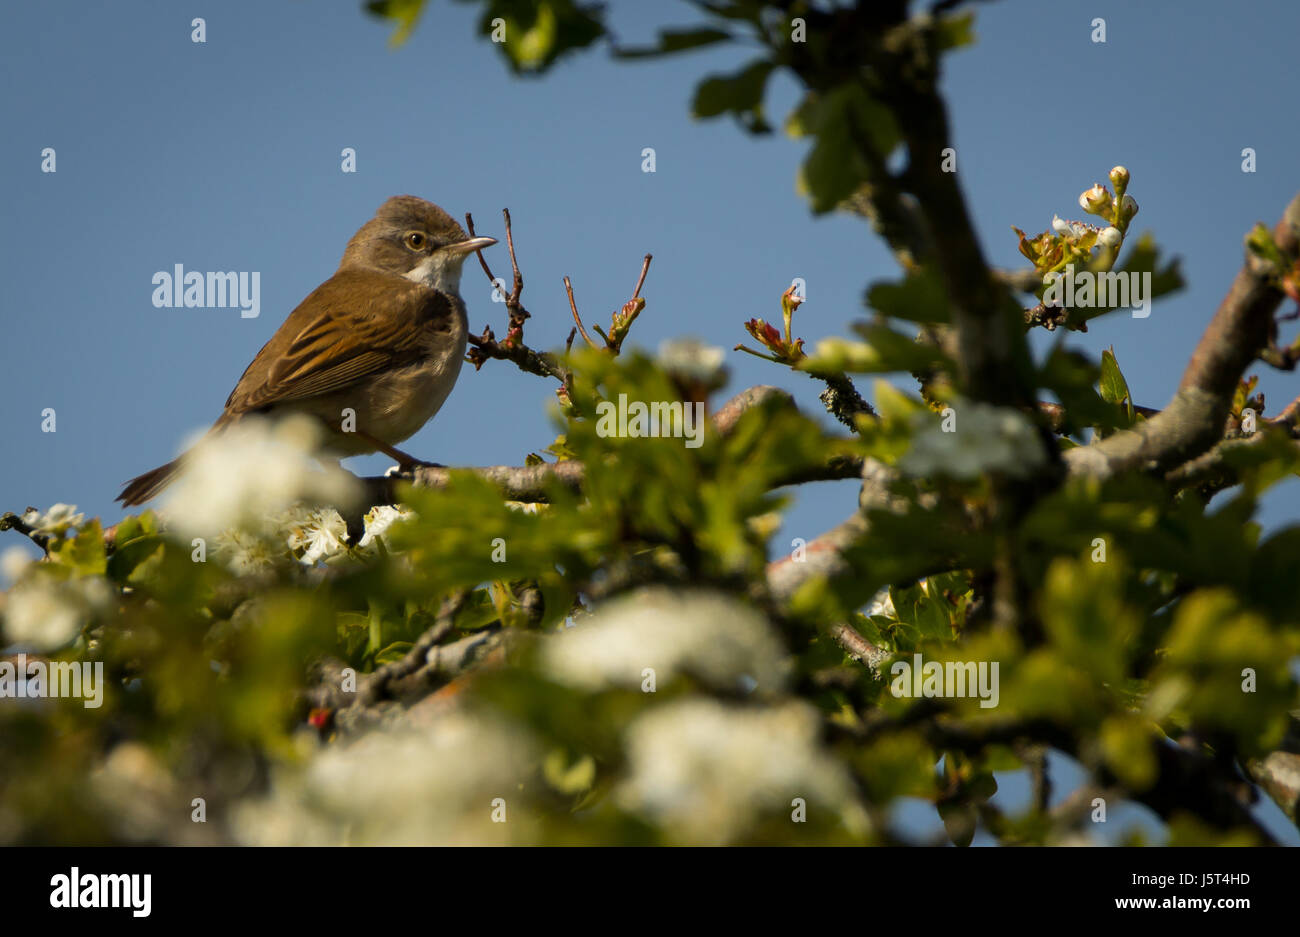 Whitethroat perched in a hawthorn tree - Stock Image